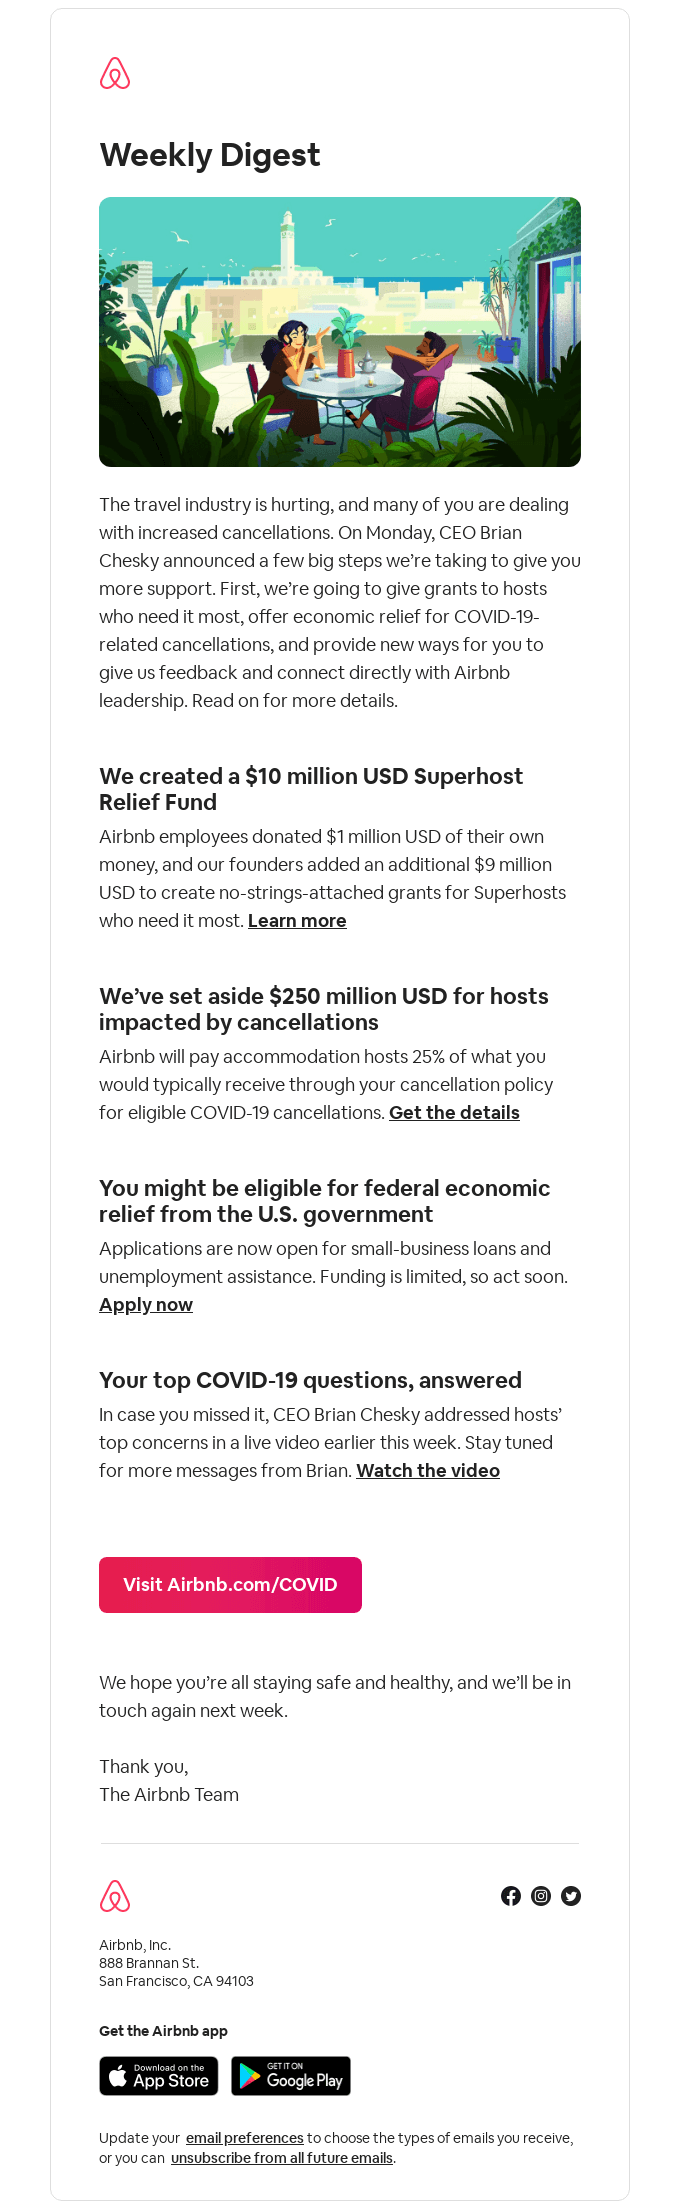 Weekly Digest: $250 million USD for hosts